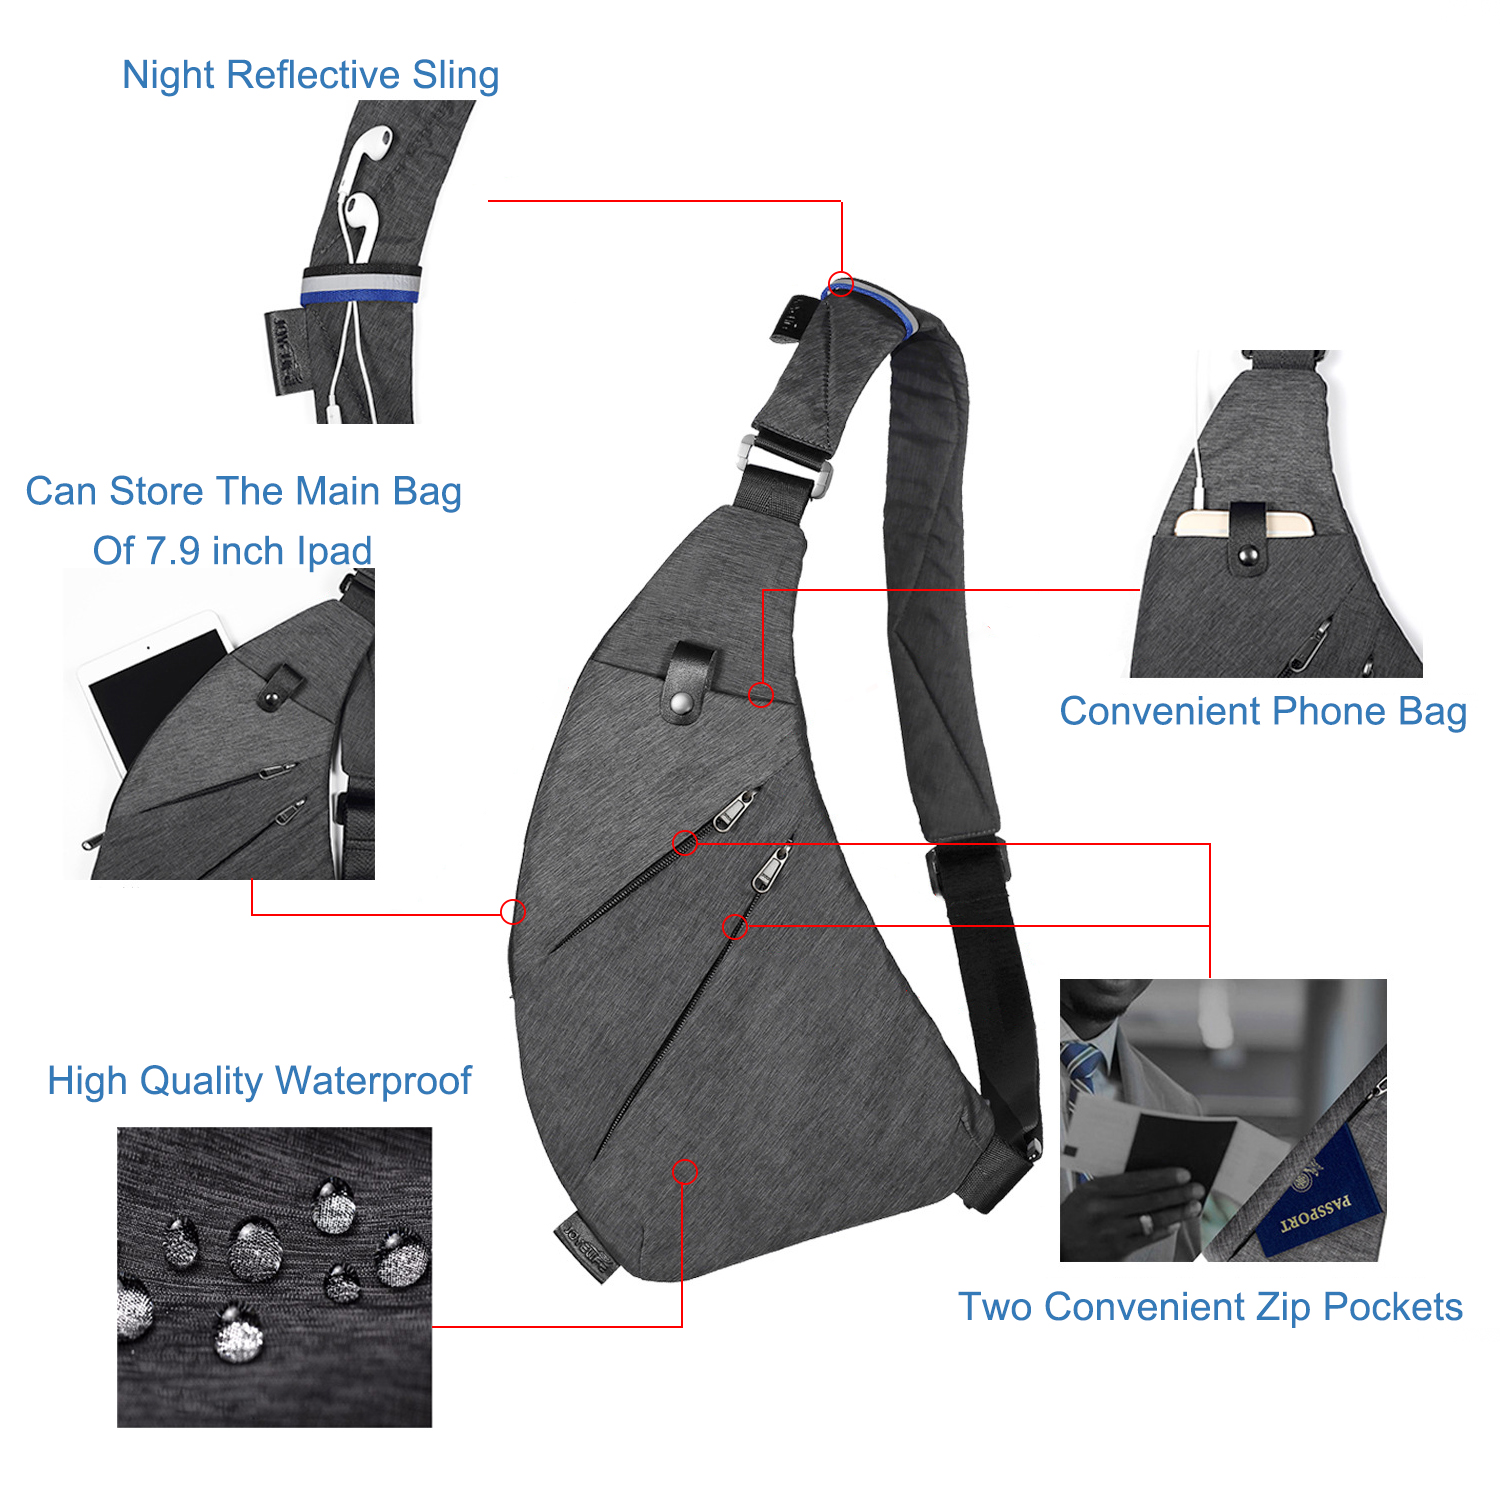 DIENQI Nylon Waterproof Waist Bag Brand Men Holster Anti Theft Shoulder Bag Sports Travel Personal Pocket Bags Casual Chest Bag